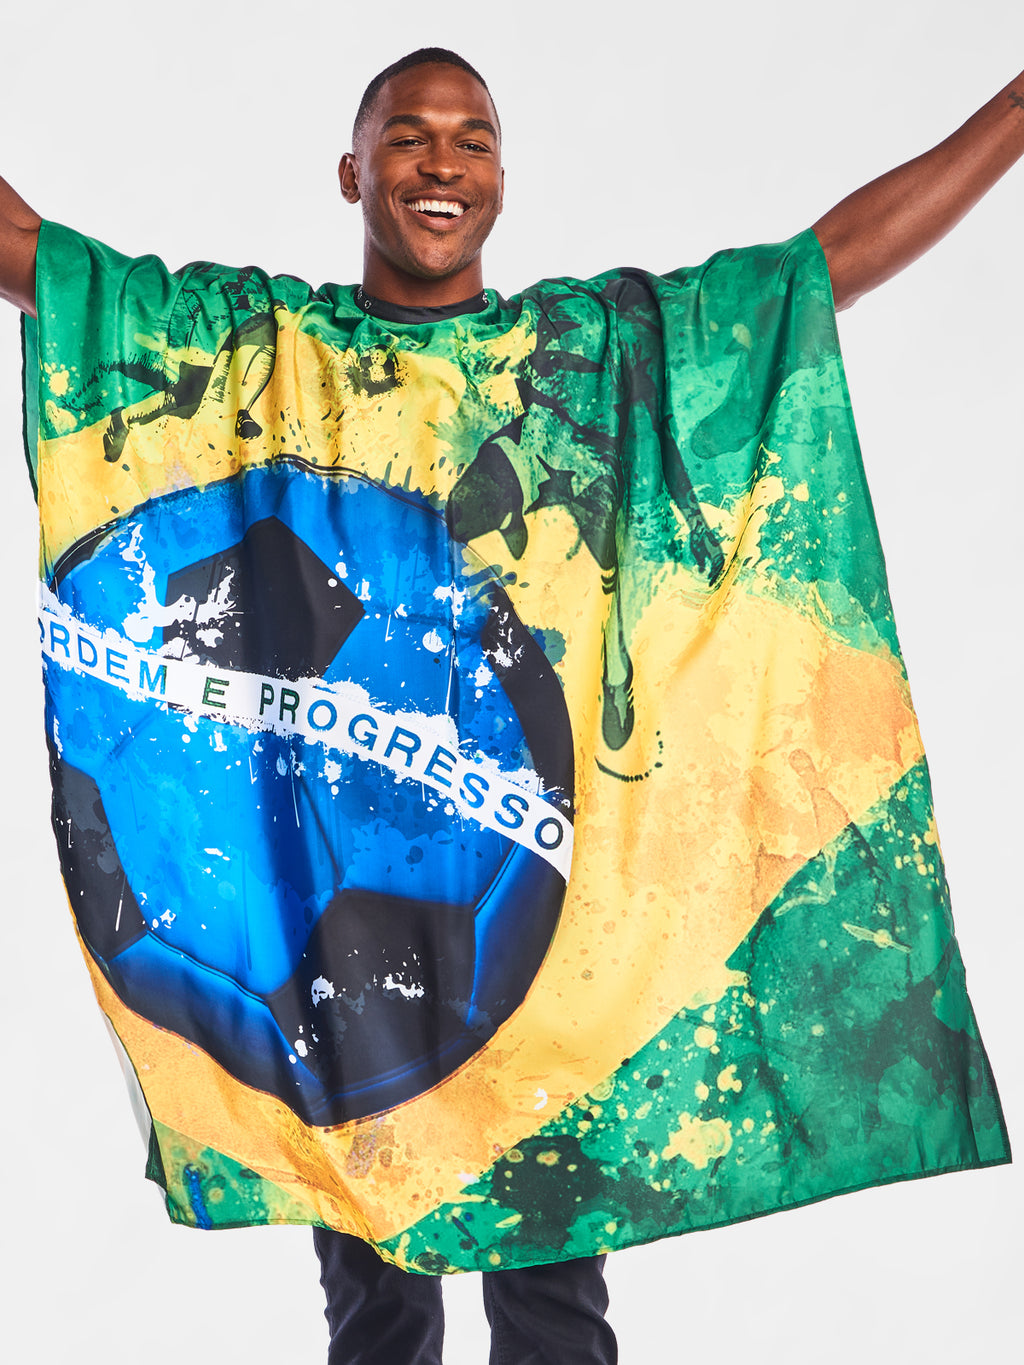 Brasileiro Barber Cape | The International Cape Collection